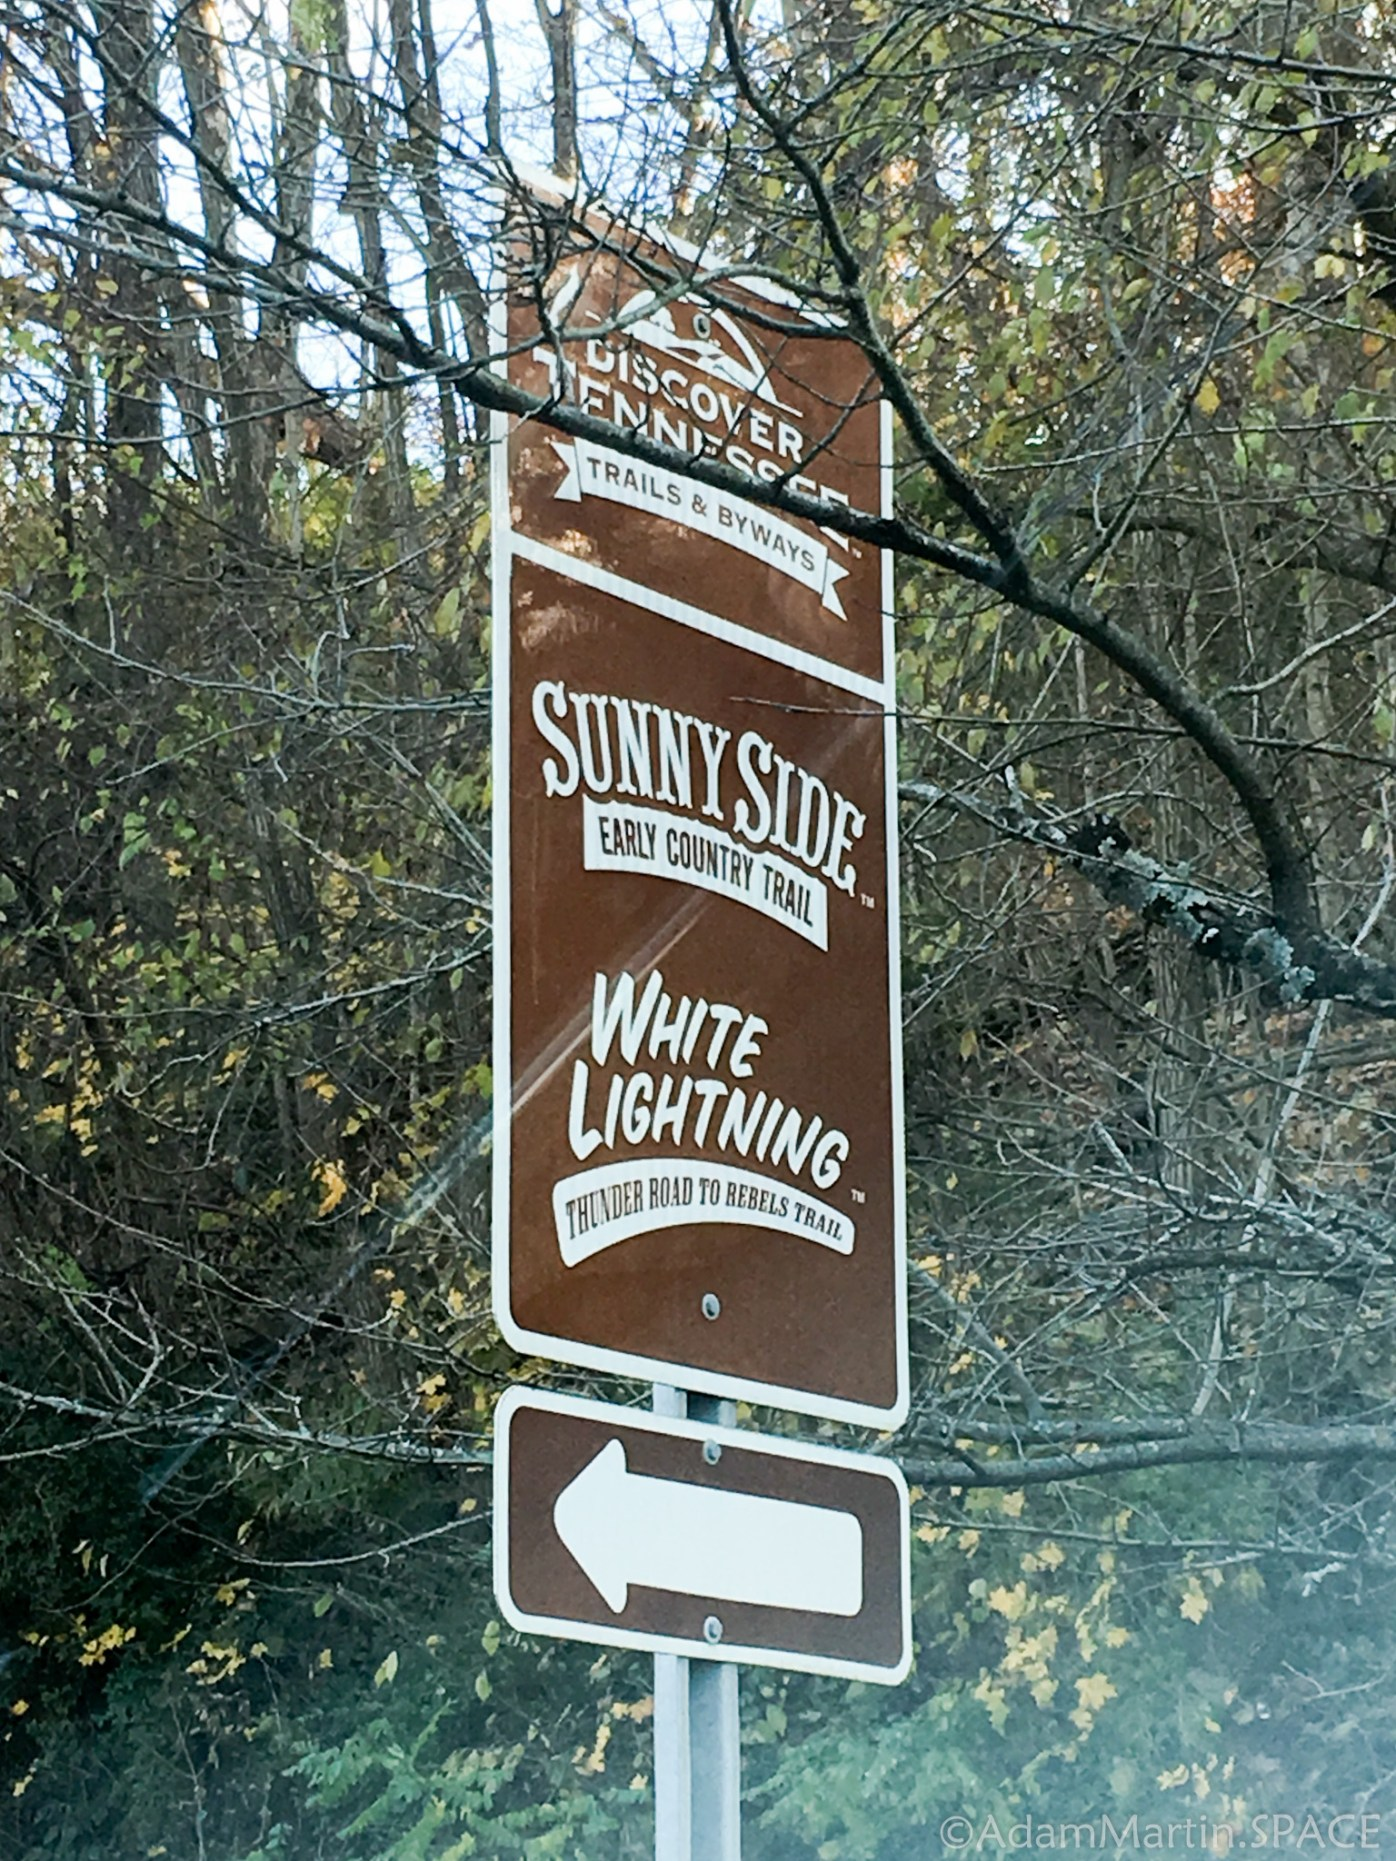 Newport, TN - Trails & Byways sign